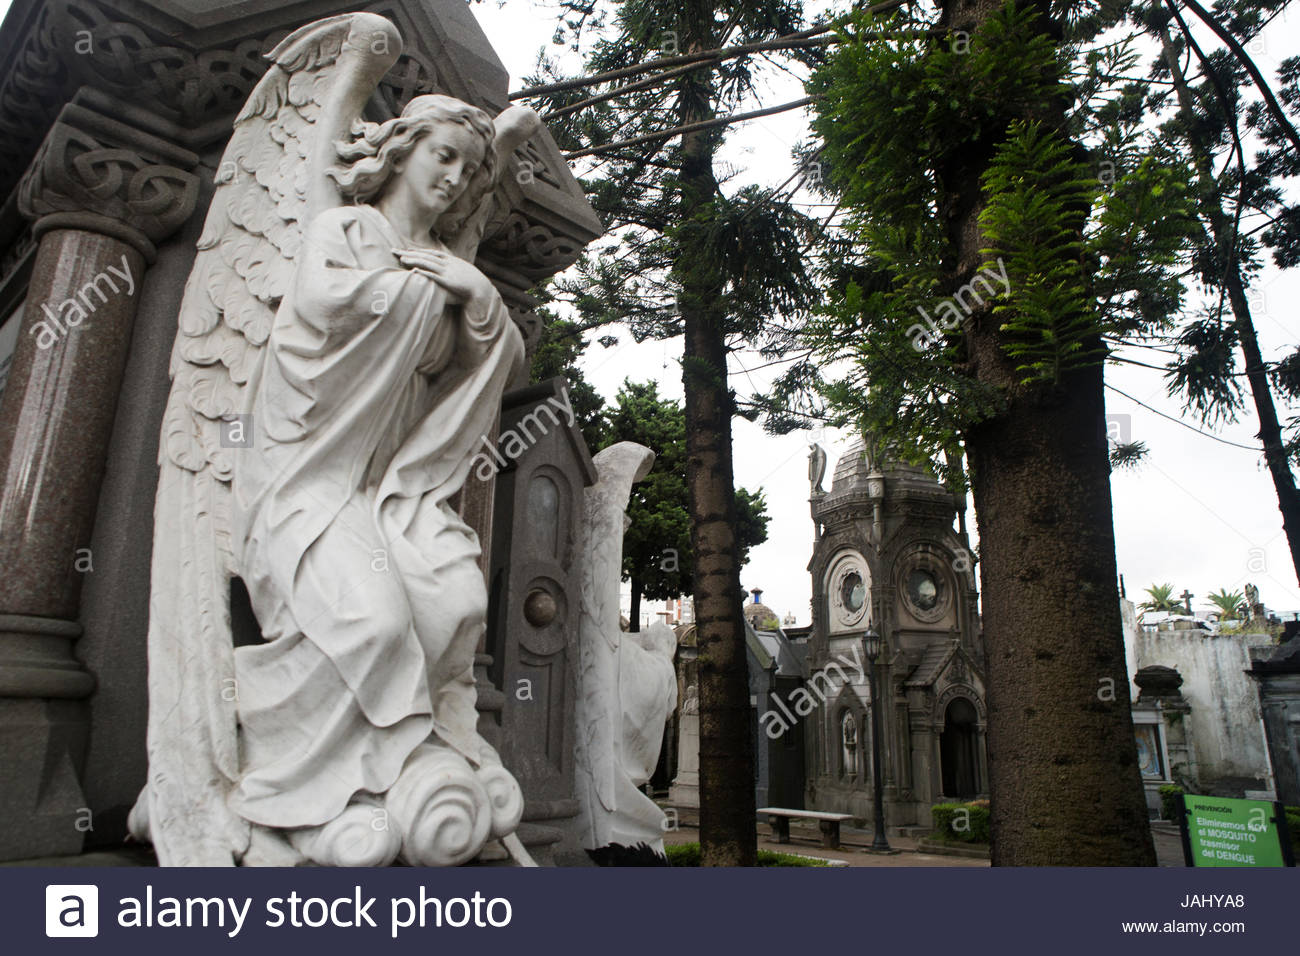 An angelic statue on the side of a tomb in the Recoleta Cemetery, in Buenos Aires, Argentina. - Stock Image